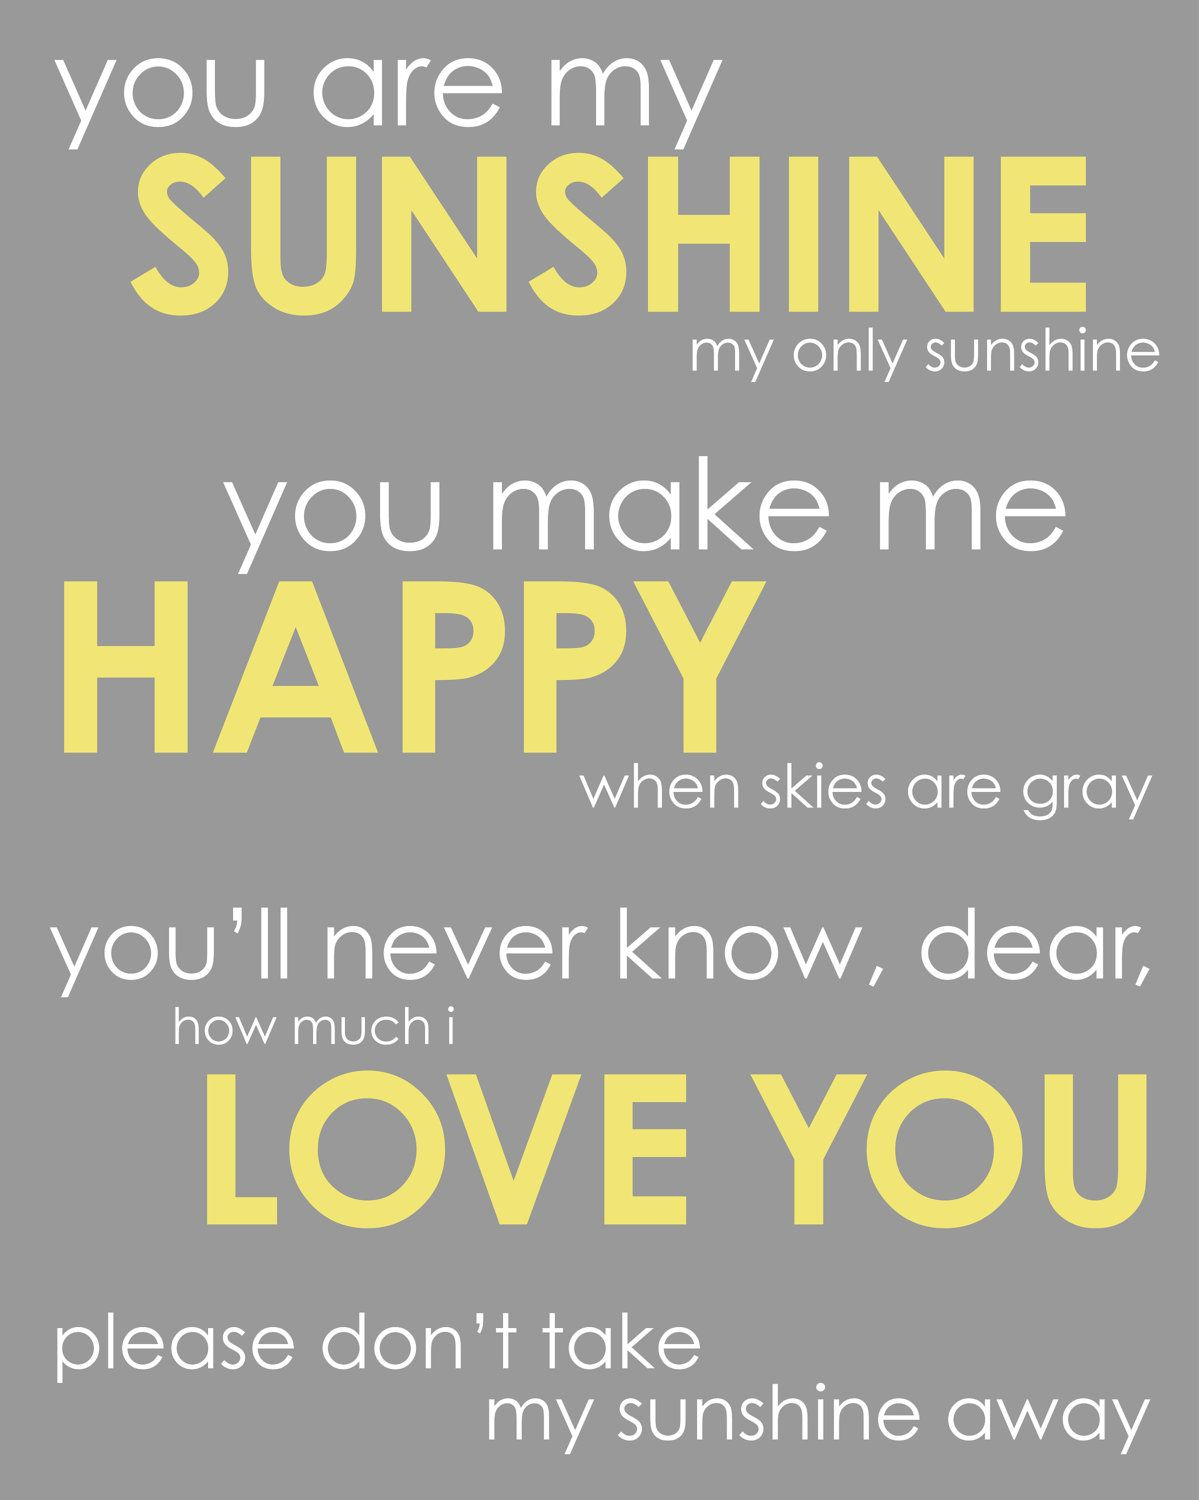 you are my sunshine C c7 you are my sunshine, my only sunshine f c c7 you make me happy when skies are gray f c am you'll never know dear, how much i love you c g7 c please don't take my sunshine away c c7 the other night dear, as i lay sleeping f c c7 i dreamed i held you in my arms f c am but when i.